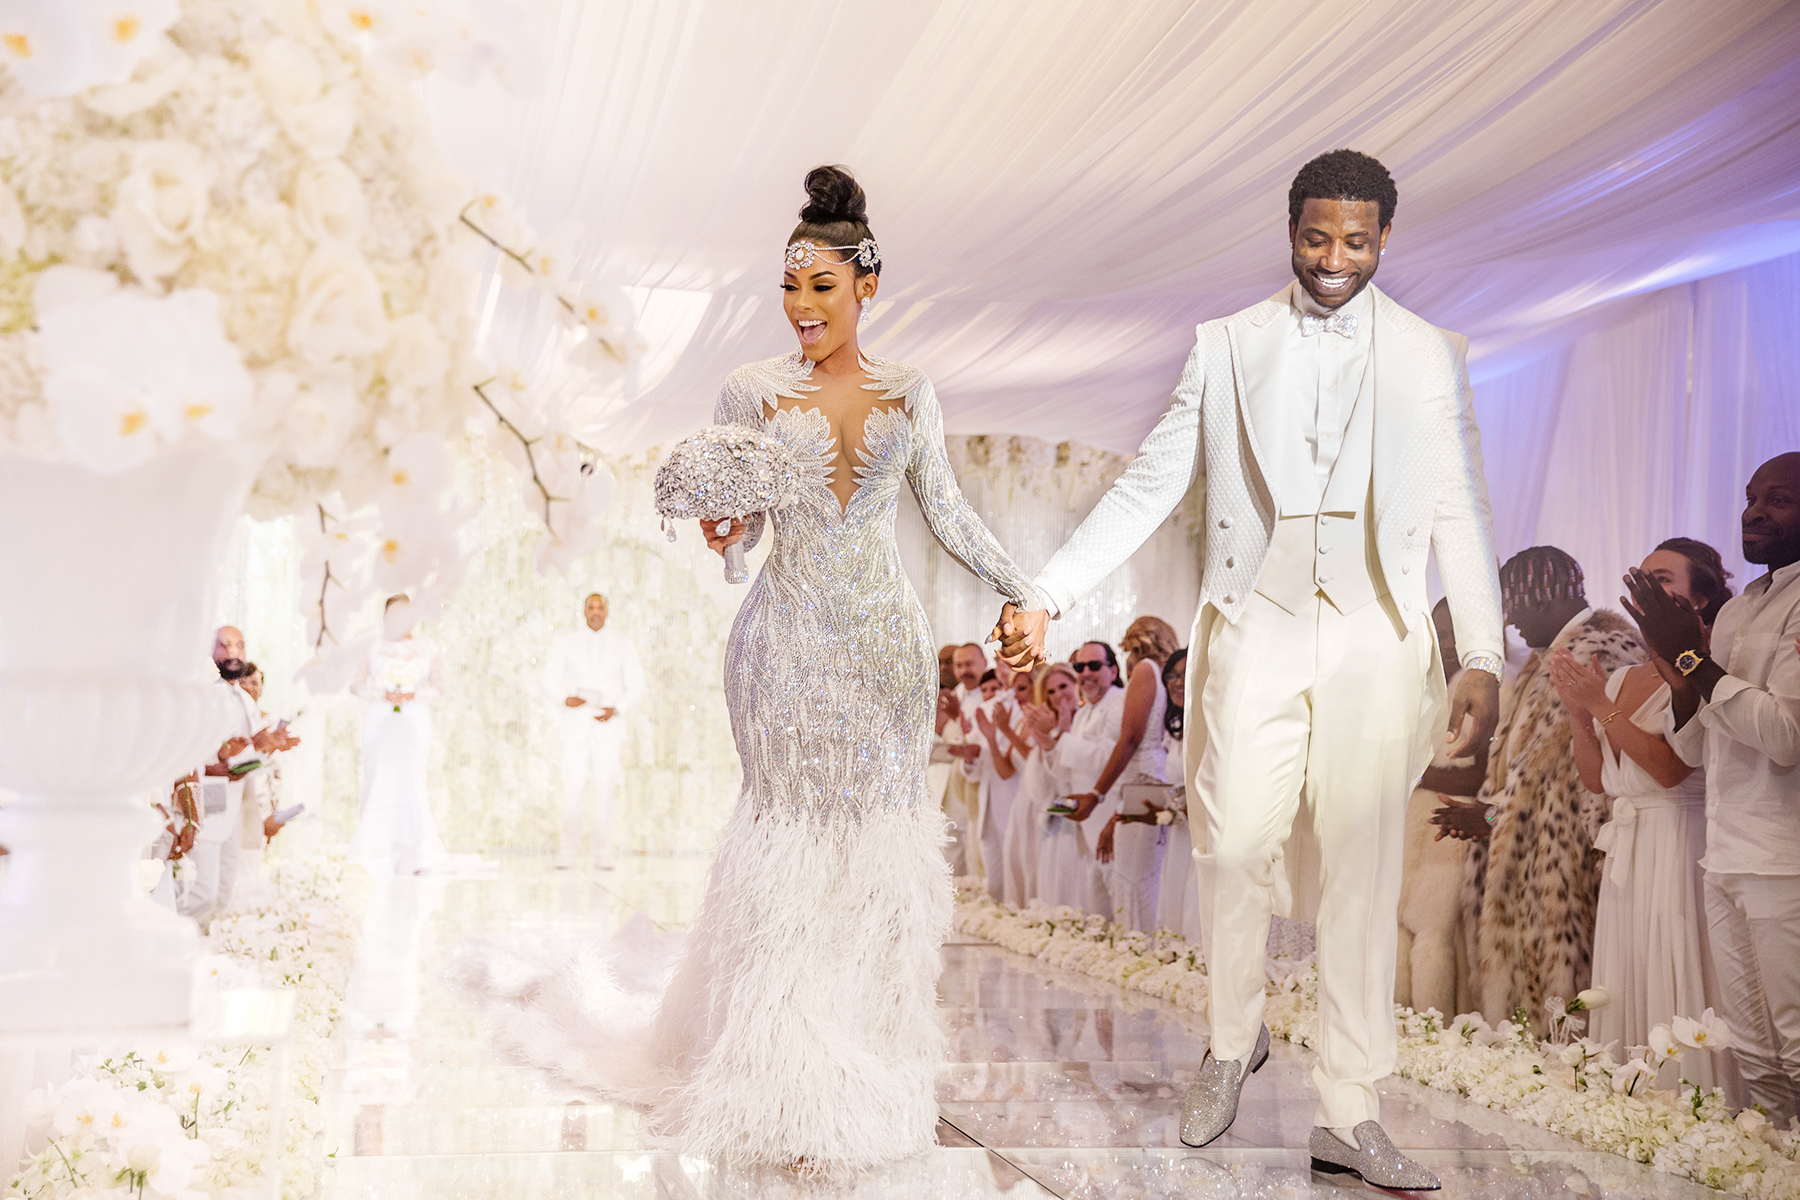 GUCCI MANE & KEYSHIA KA'OIR: THE MANE EVENT   THIS 10-PART WEDDING SPECIAL FOLLOWS THE TWISTS AND TURNS OF CELEBRITY HIP-HOP COUPLE KEYSHIA KA'OIR AND GUCCI MANE AS THEY PLAN FOR THE MOST NOTORIOUS CELEBRITY HIP-HOP WEDDING OF THE YEAR WHILE STRUGGLING TO BLEND THEIR FAMILIES.